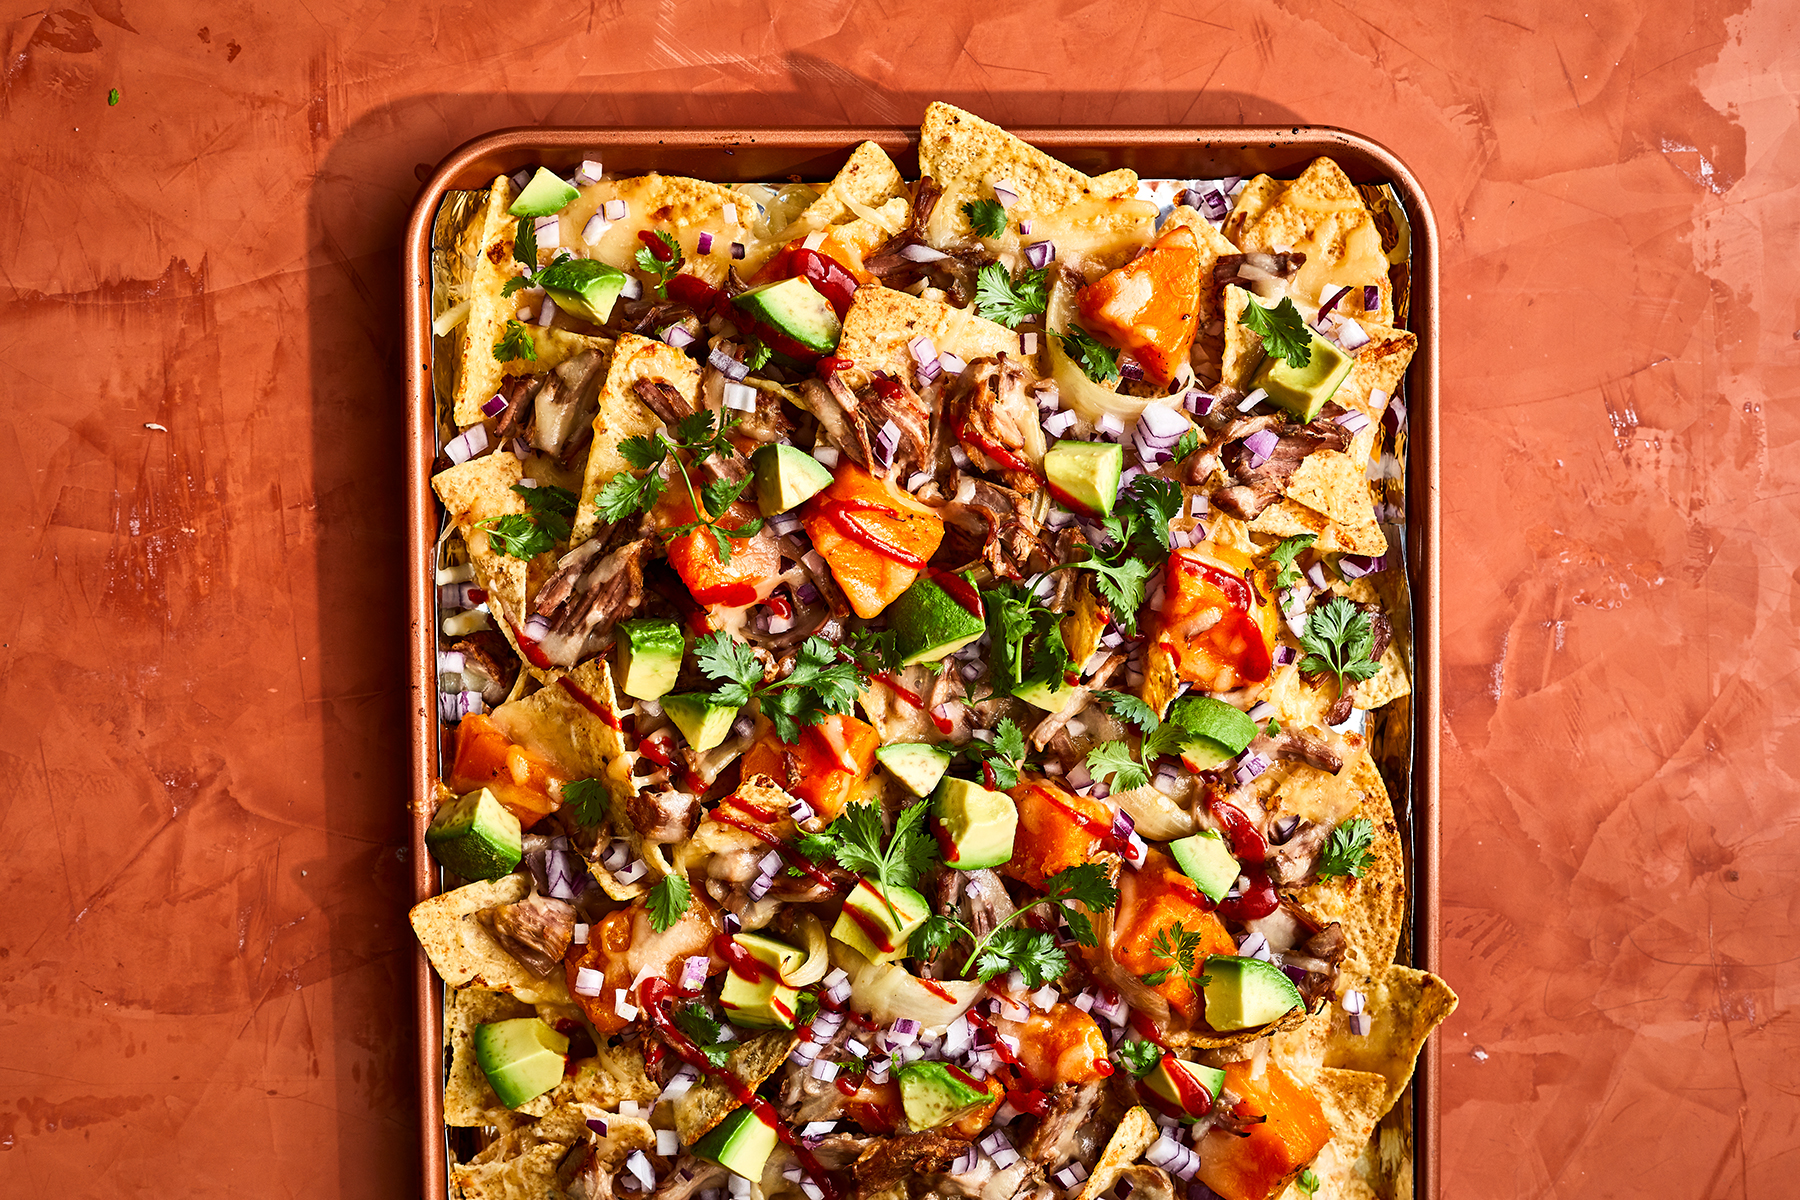 Braised Pork and Squash Nachos Recipe